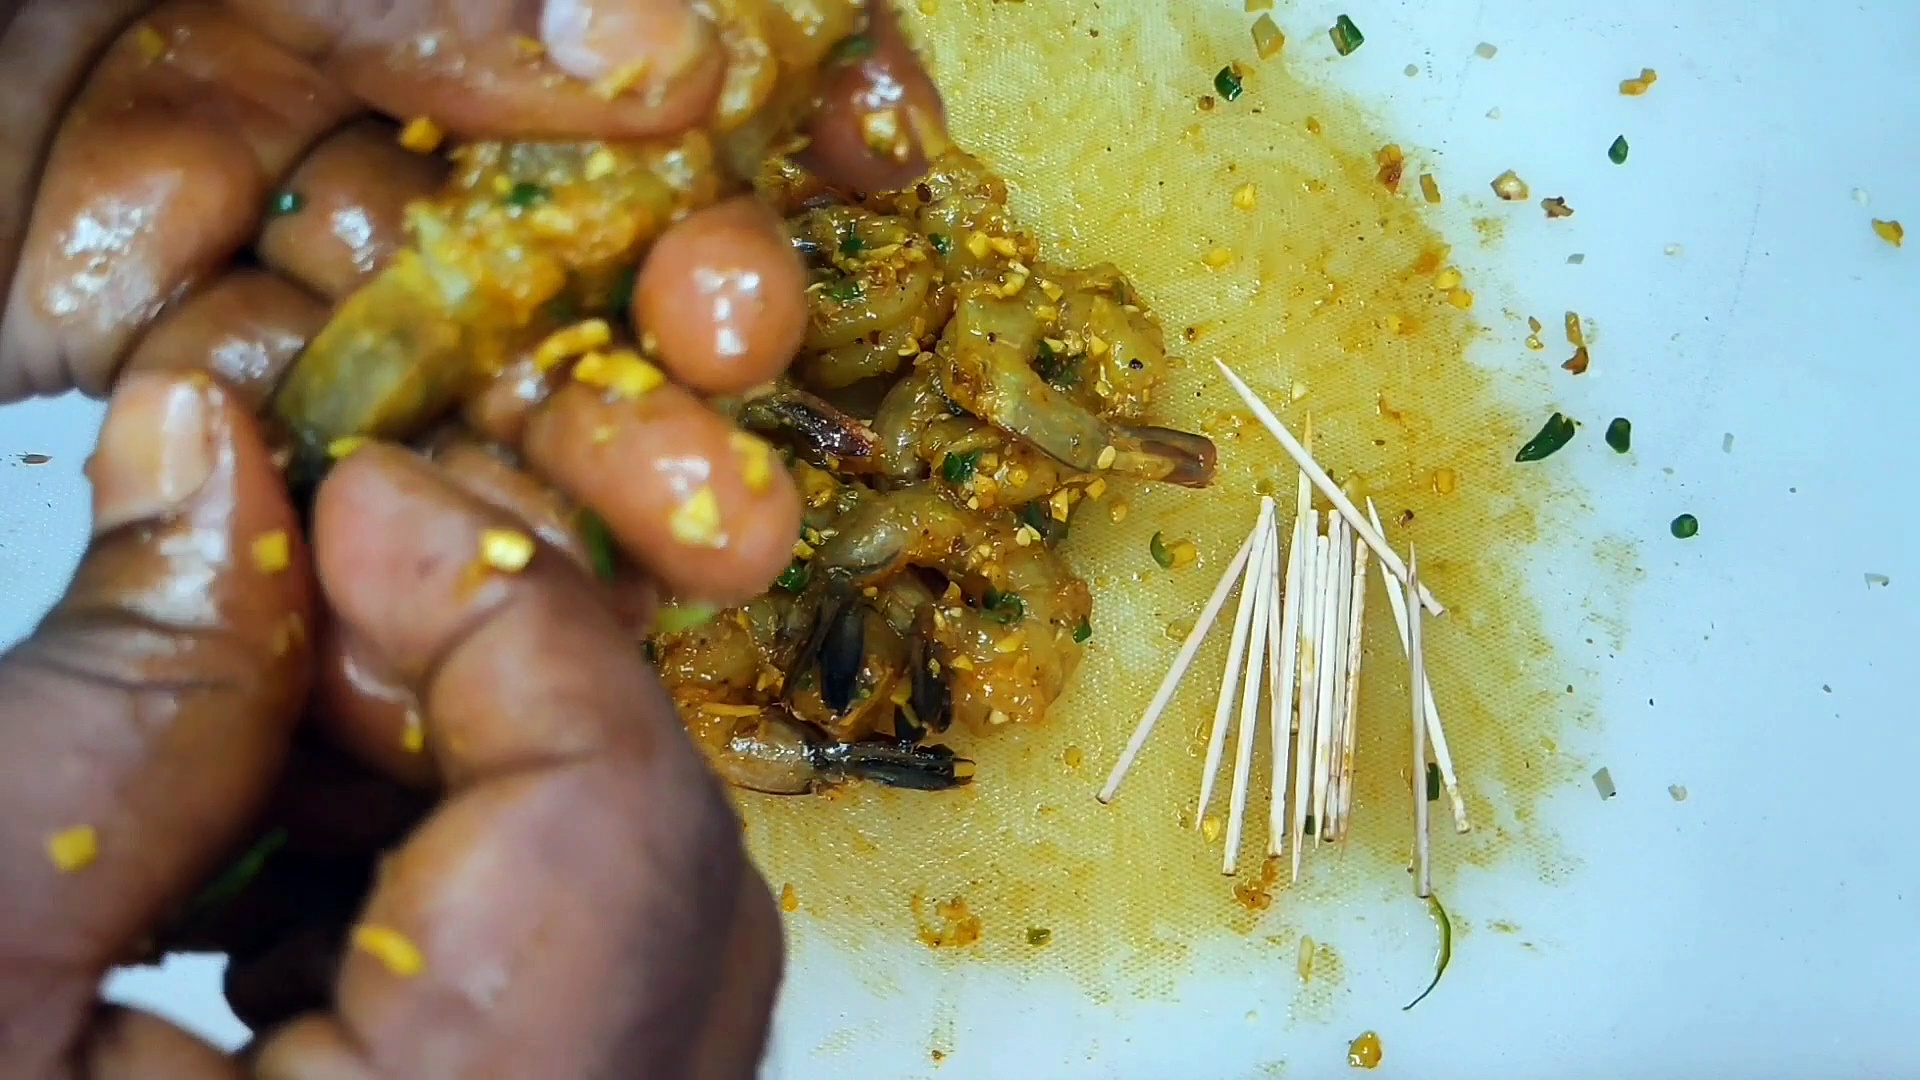 HOW TO MAKE PRAWNS AT HOME |PRAWNS MAKING INDIAN STYLE